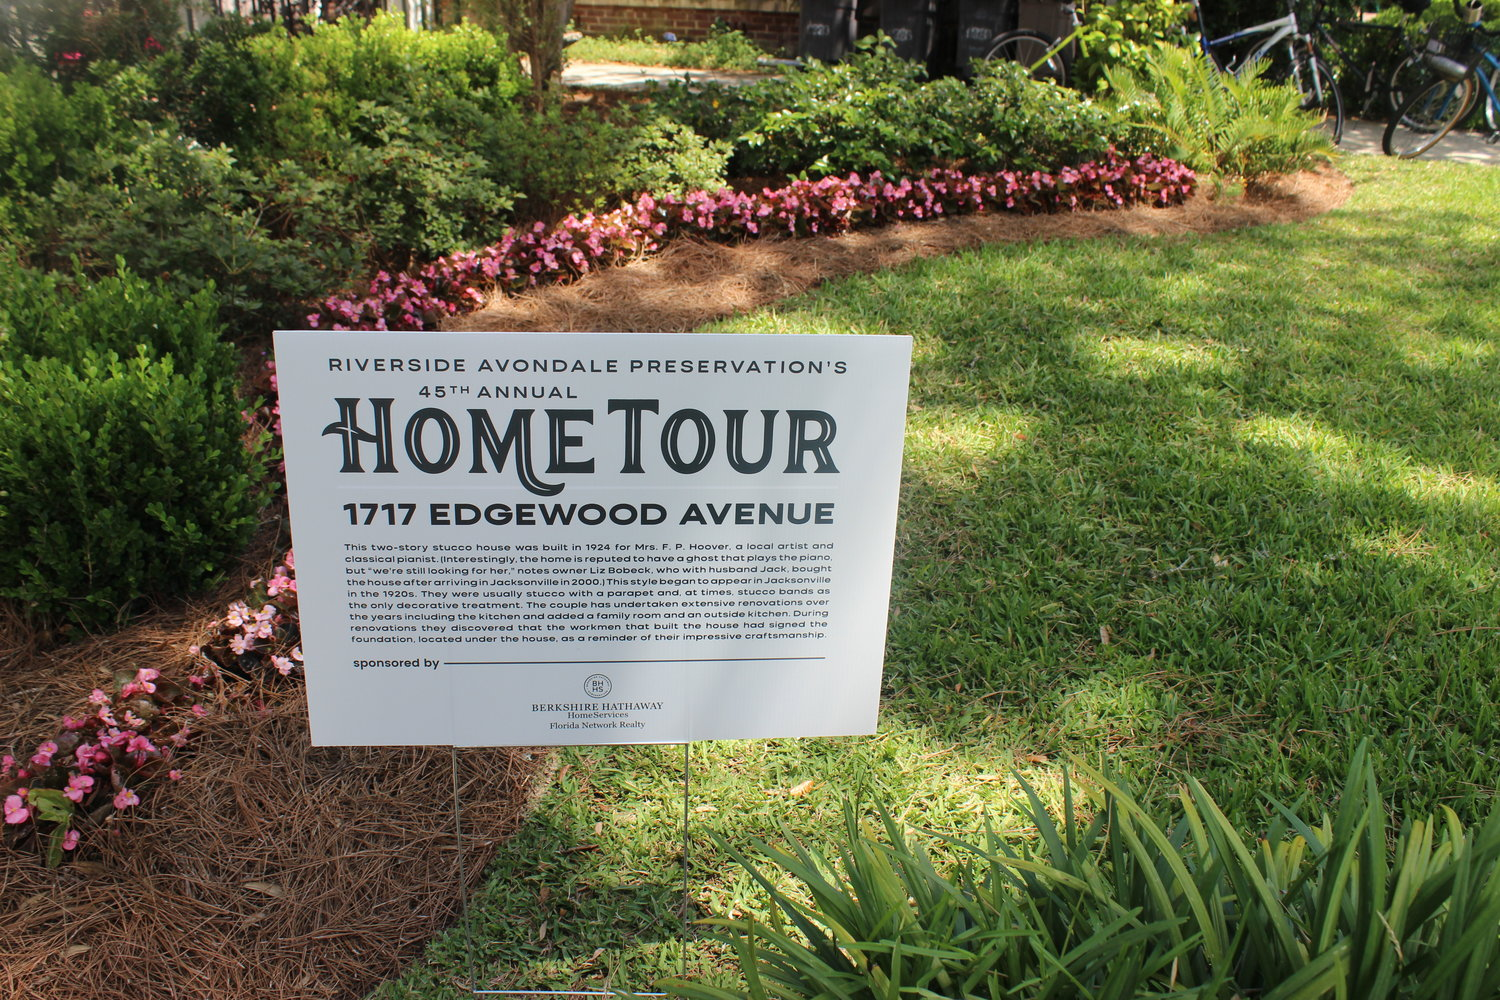 The RAP 2019 Spring Home Tour offered a look into the historic district of Riverside and Avondale.